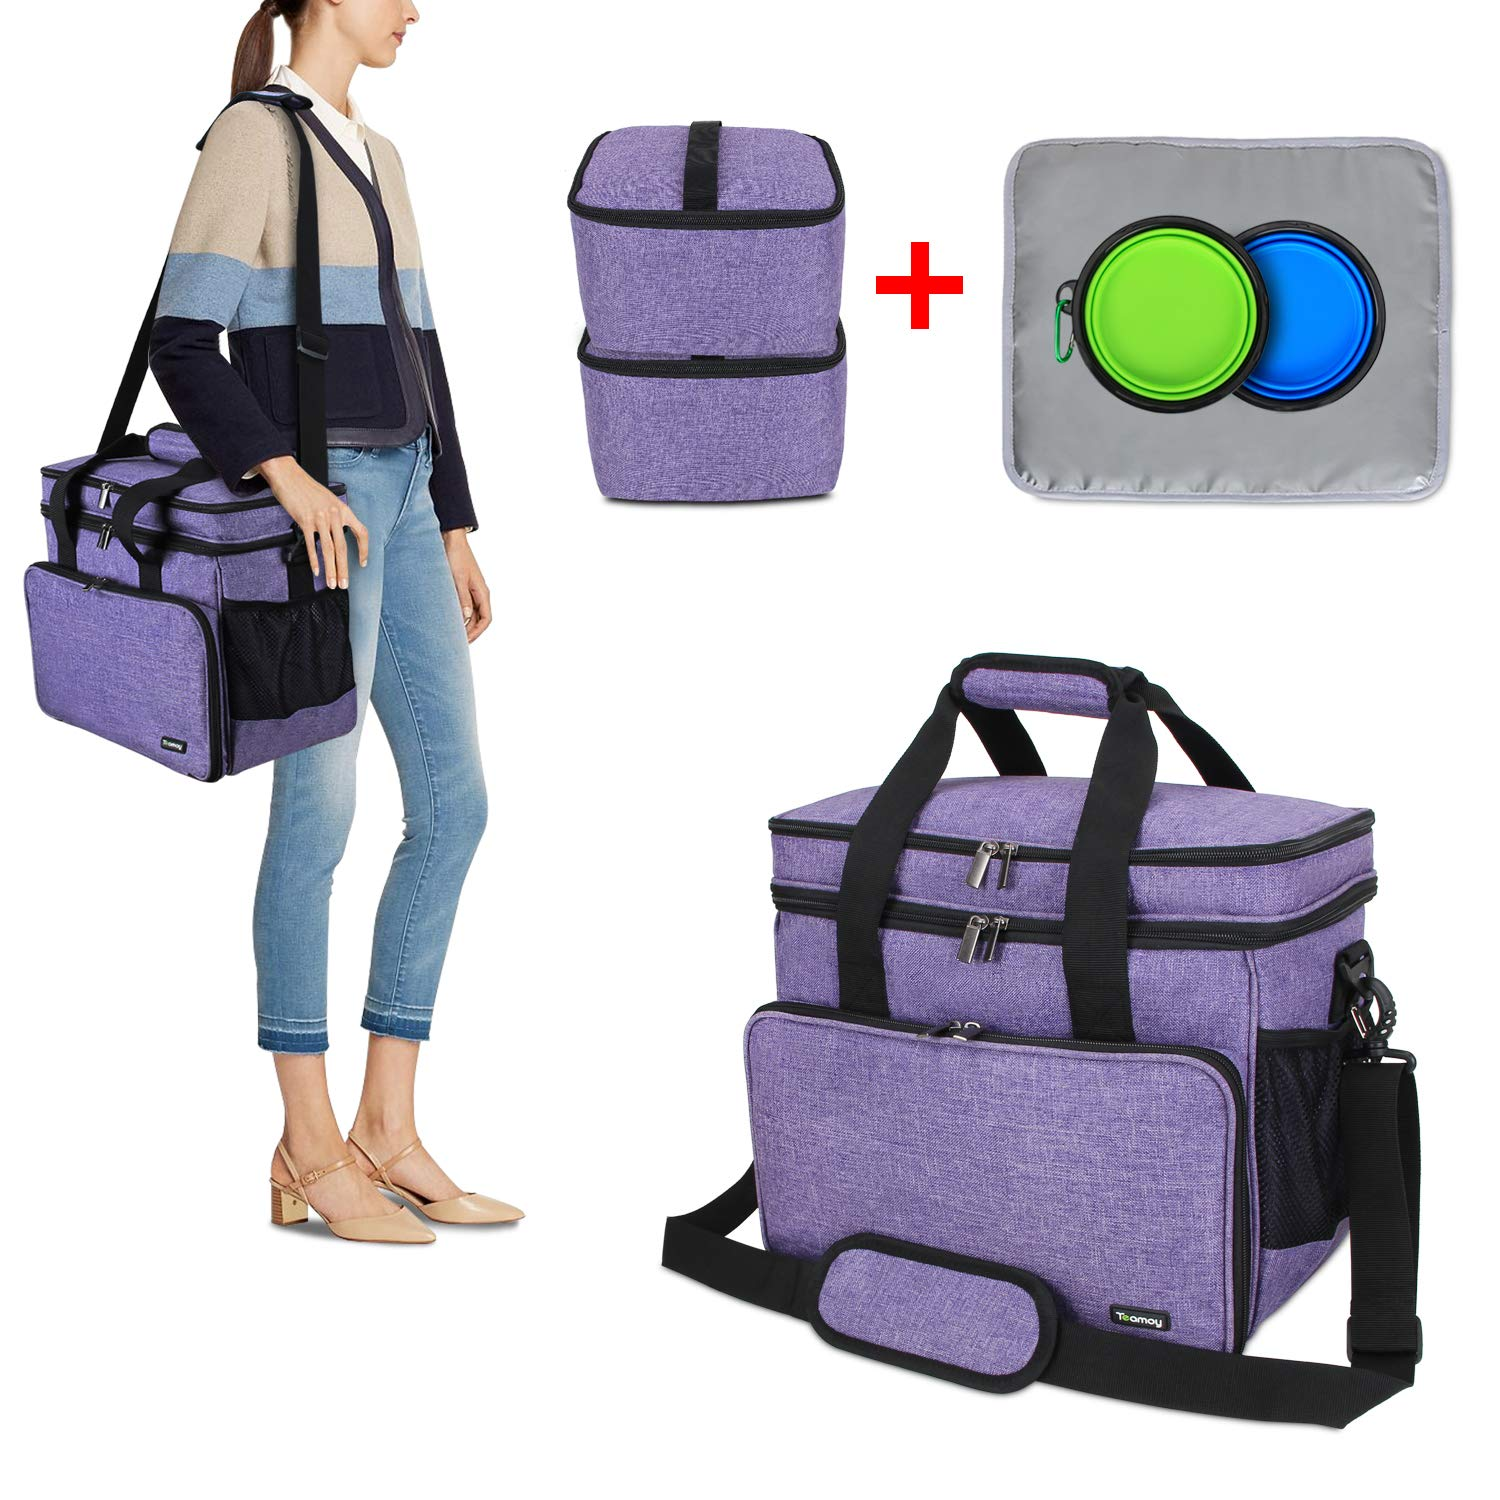 Teamoy Double Layer Dog Travel Bag with 2 Silicone Collapsible Bowls, 2 Food Carriers, 1 Water-Resistant Placemat, Pet Supplies Weekend Tote Organizer(Medium, Purple) by Teamoy